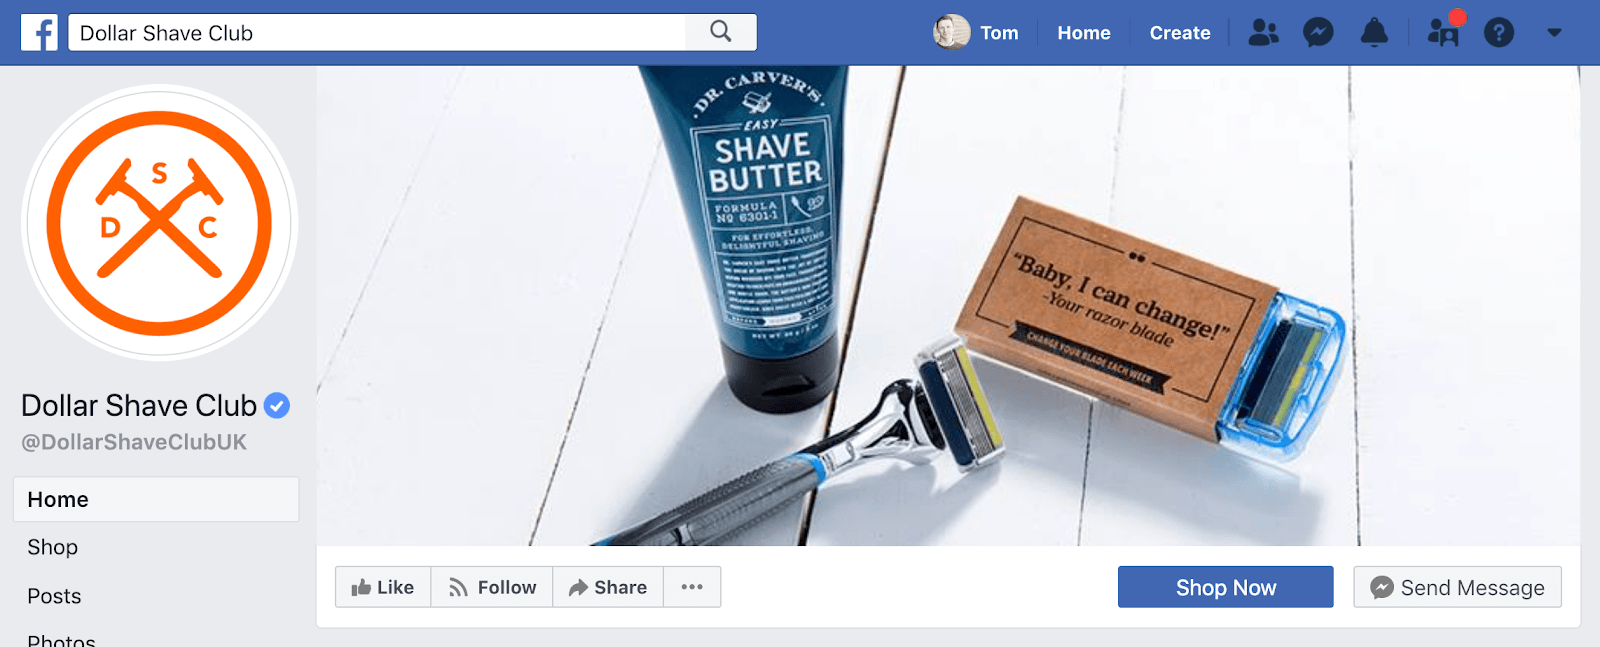 Dollar Shave Club Facebook Cover Photo